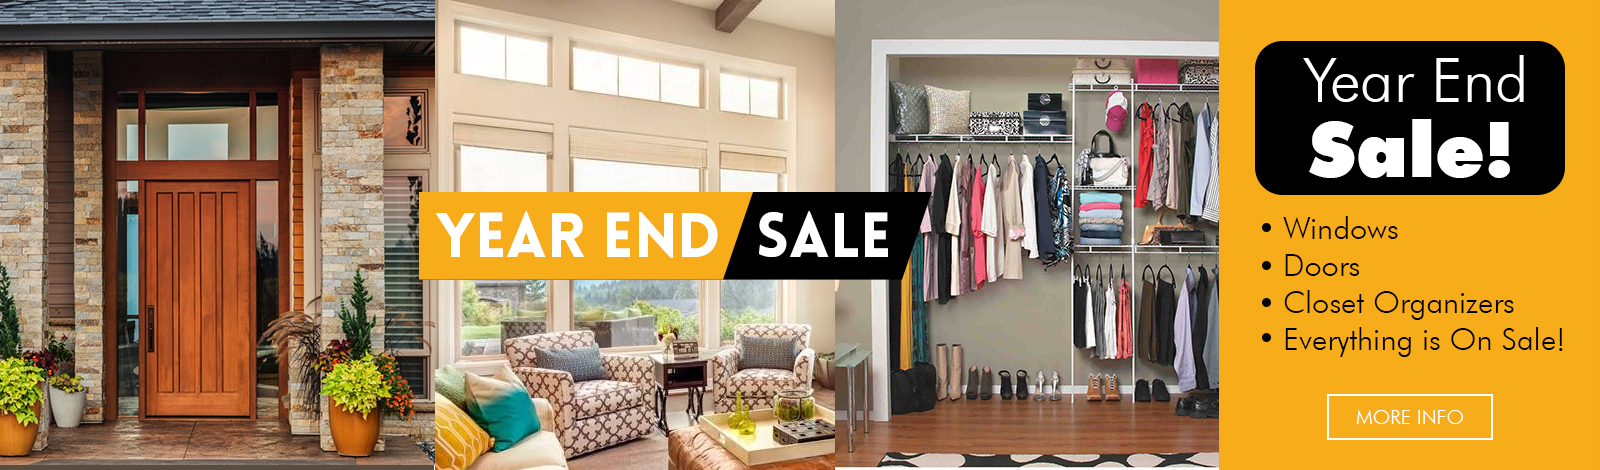 Kobyco Windows and Doors Year End Sale-Save on Replacement Windows, Interior and Exterior Doors, Closet Organizers, Retractable Awnings, Crown Molding, Pergola and Louvered Roofs